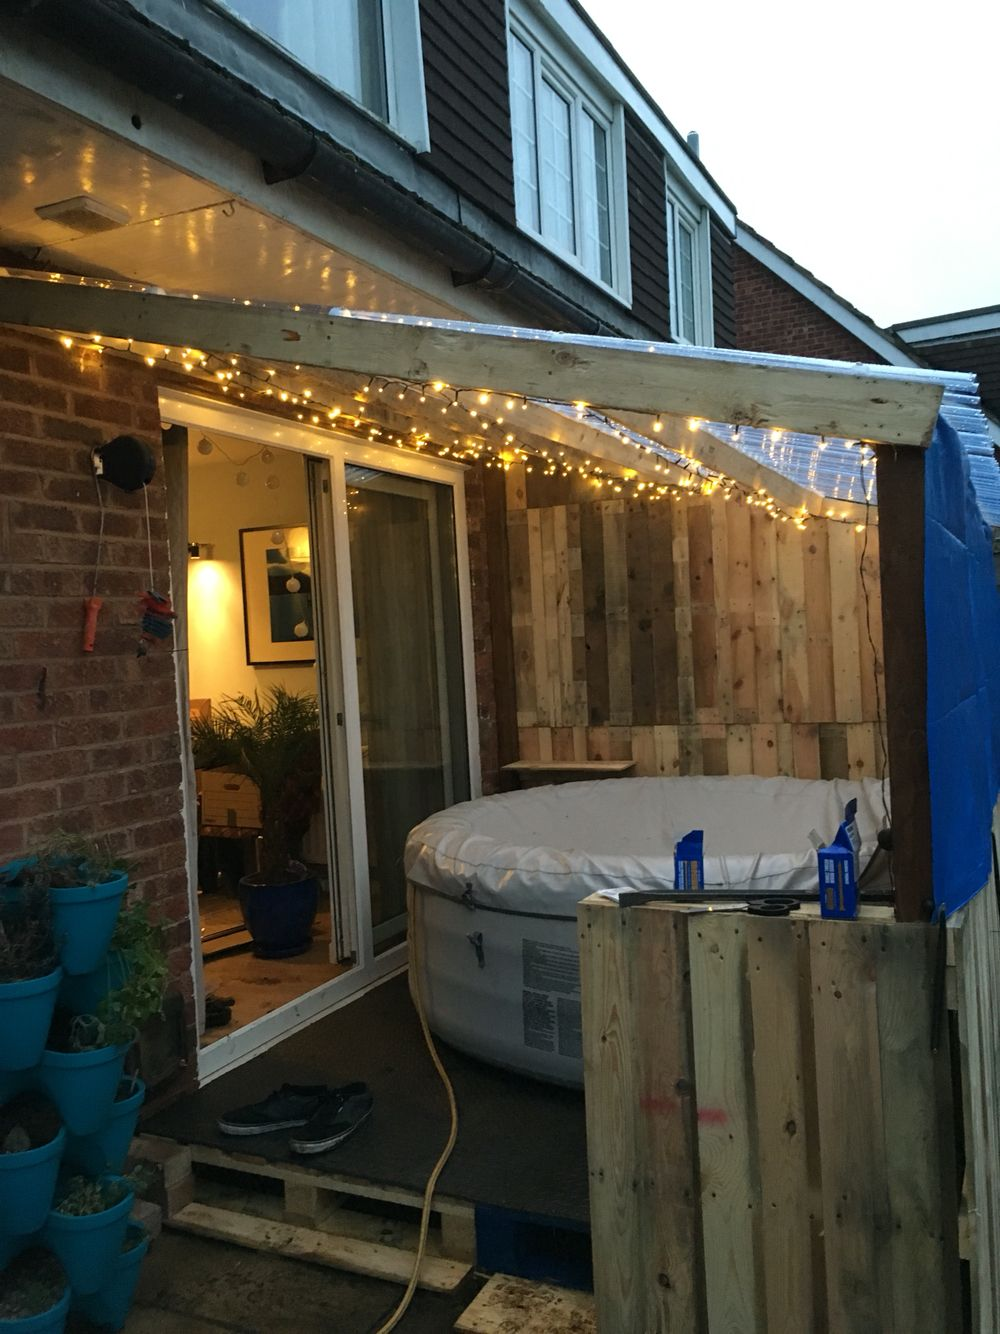 We Love The Use Of Recycled Materials To Create This Cosy Home For A Lay Z Spa Hot Tub Patio Hot Tub Garden Portable Hot Tub